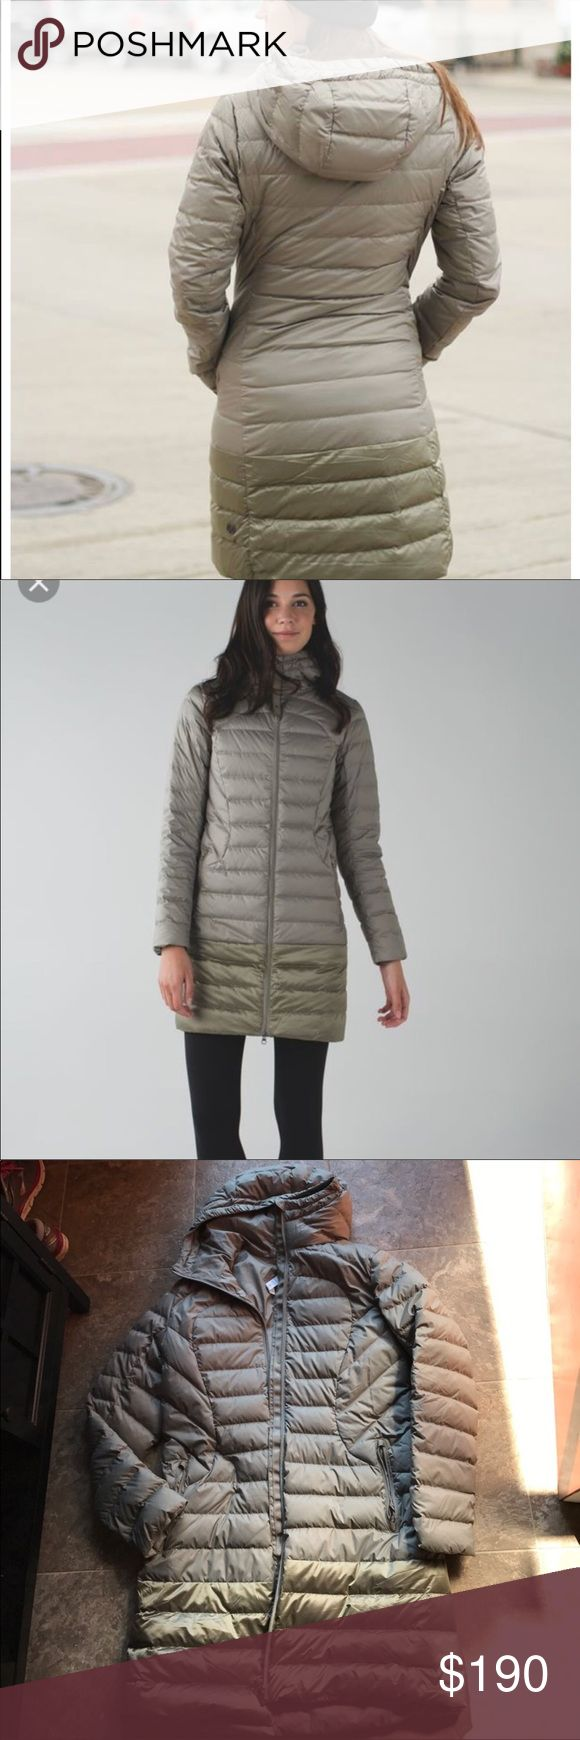 Lululemon 1x Lady Jacket Soft Earth Goose Down 10 Good used condition. Only has small stain on bottom of coat that is not noticeable when wearing. Small stain on sleeve as pictured. Goose down long jacket lululemon athletica Jackets & Coats